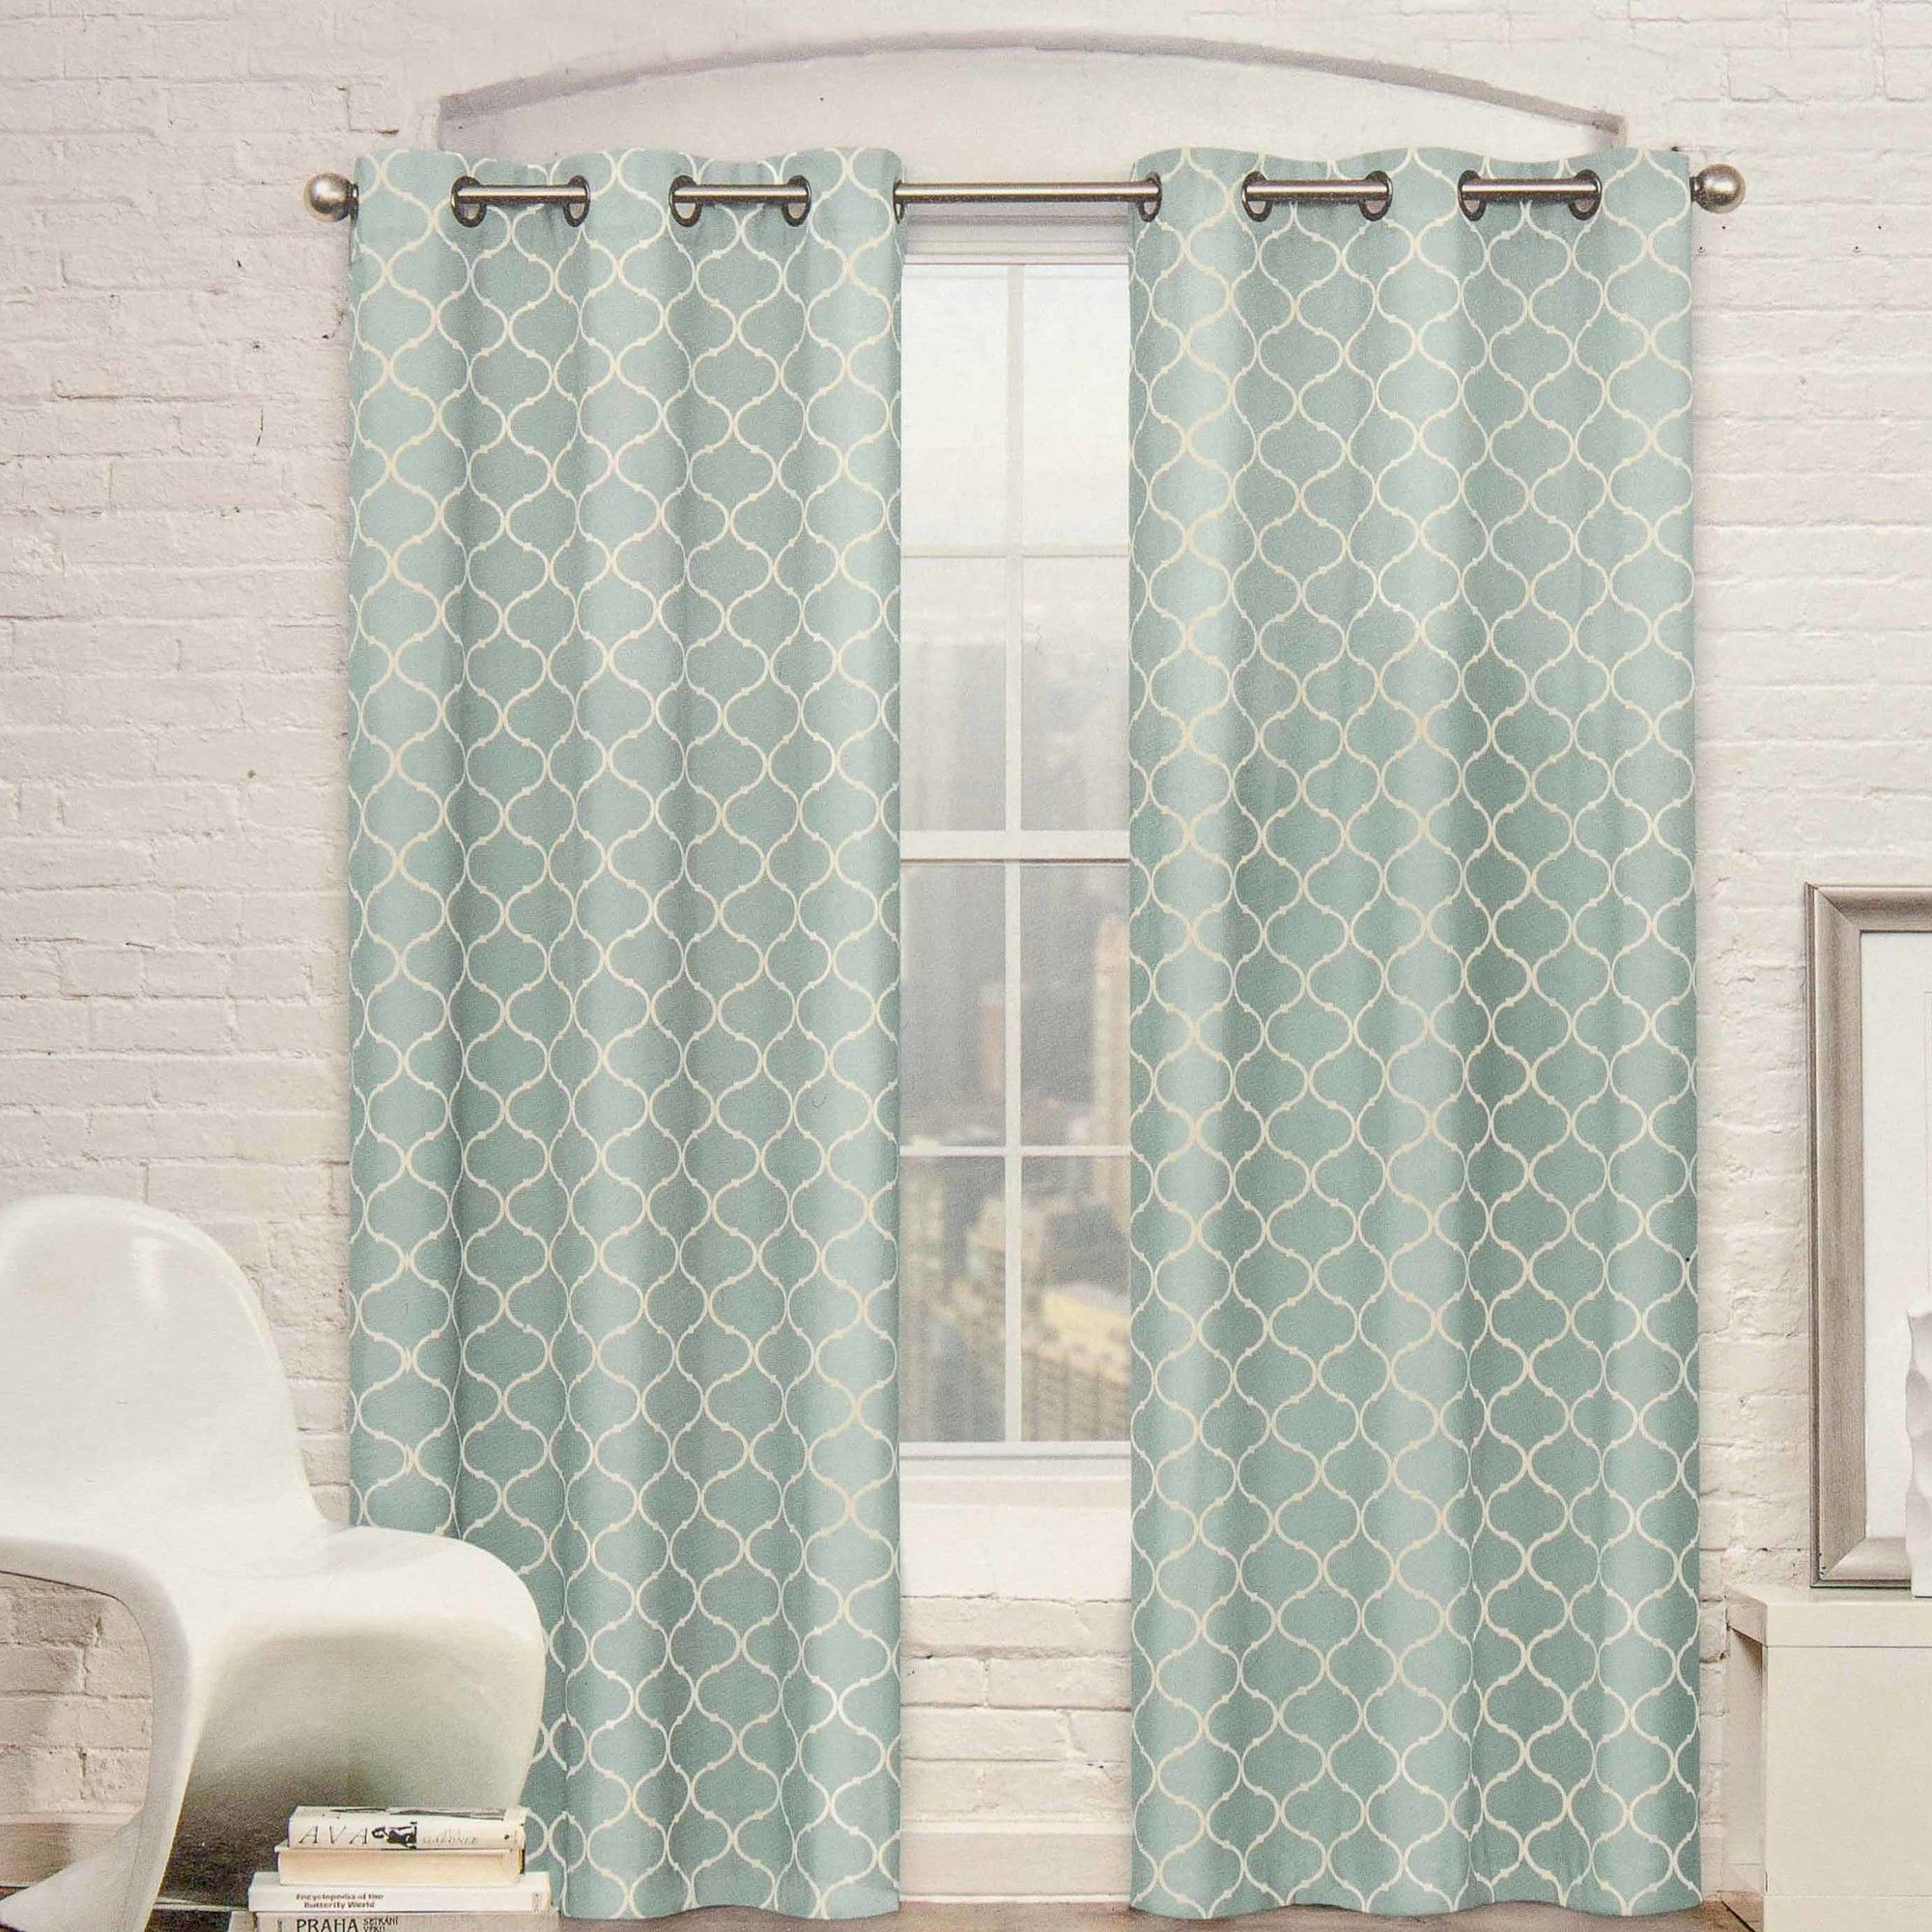 of captivating swag window dramatic yellow black enthrall full kitchen delicate valance shocking windows turquoise valances dazzle excellent likable and endearing drapes bed curtains beautiful bathroom canada turquoi miraculous coral small r size exotic orange